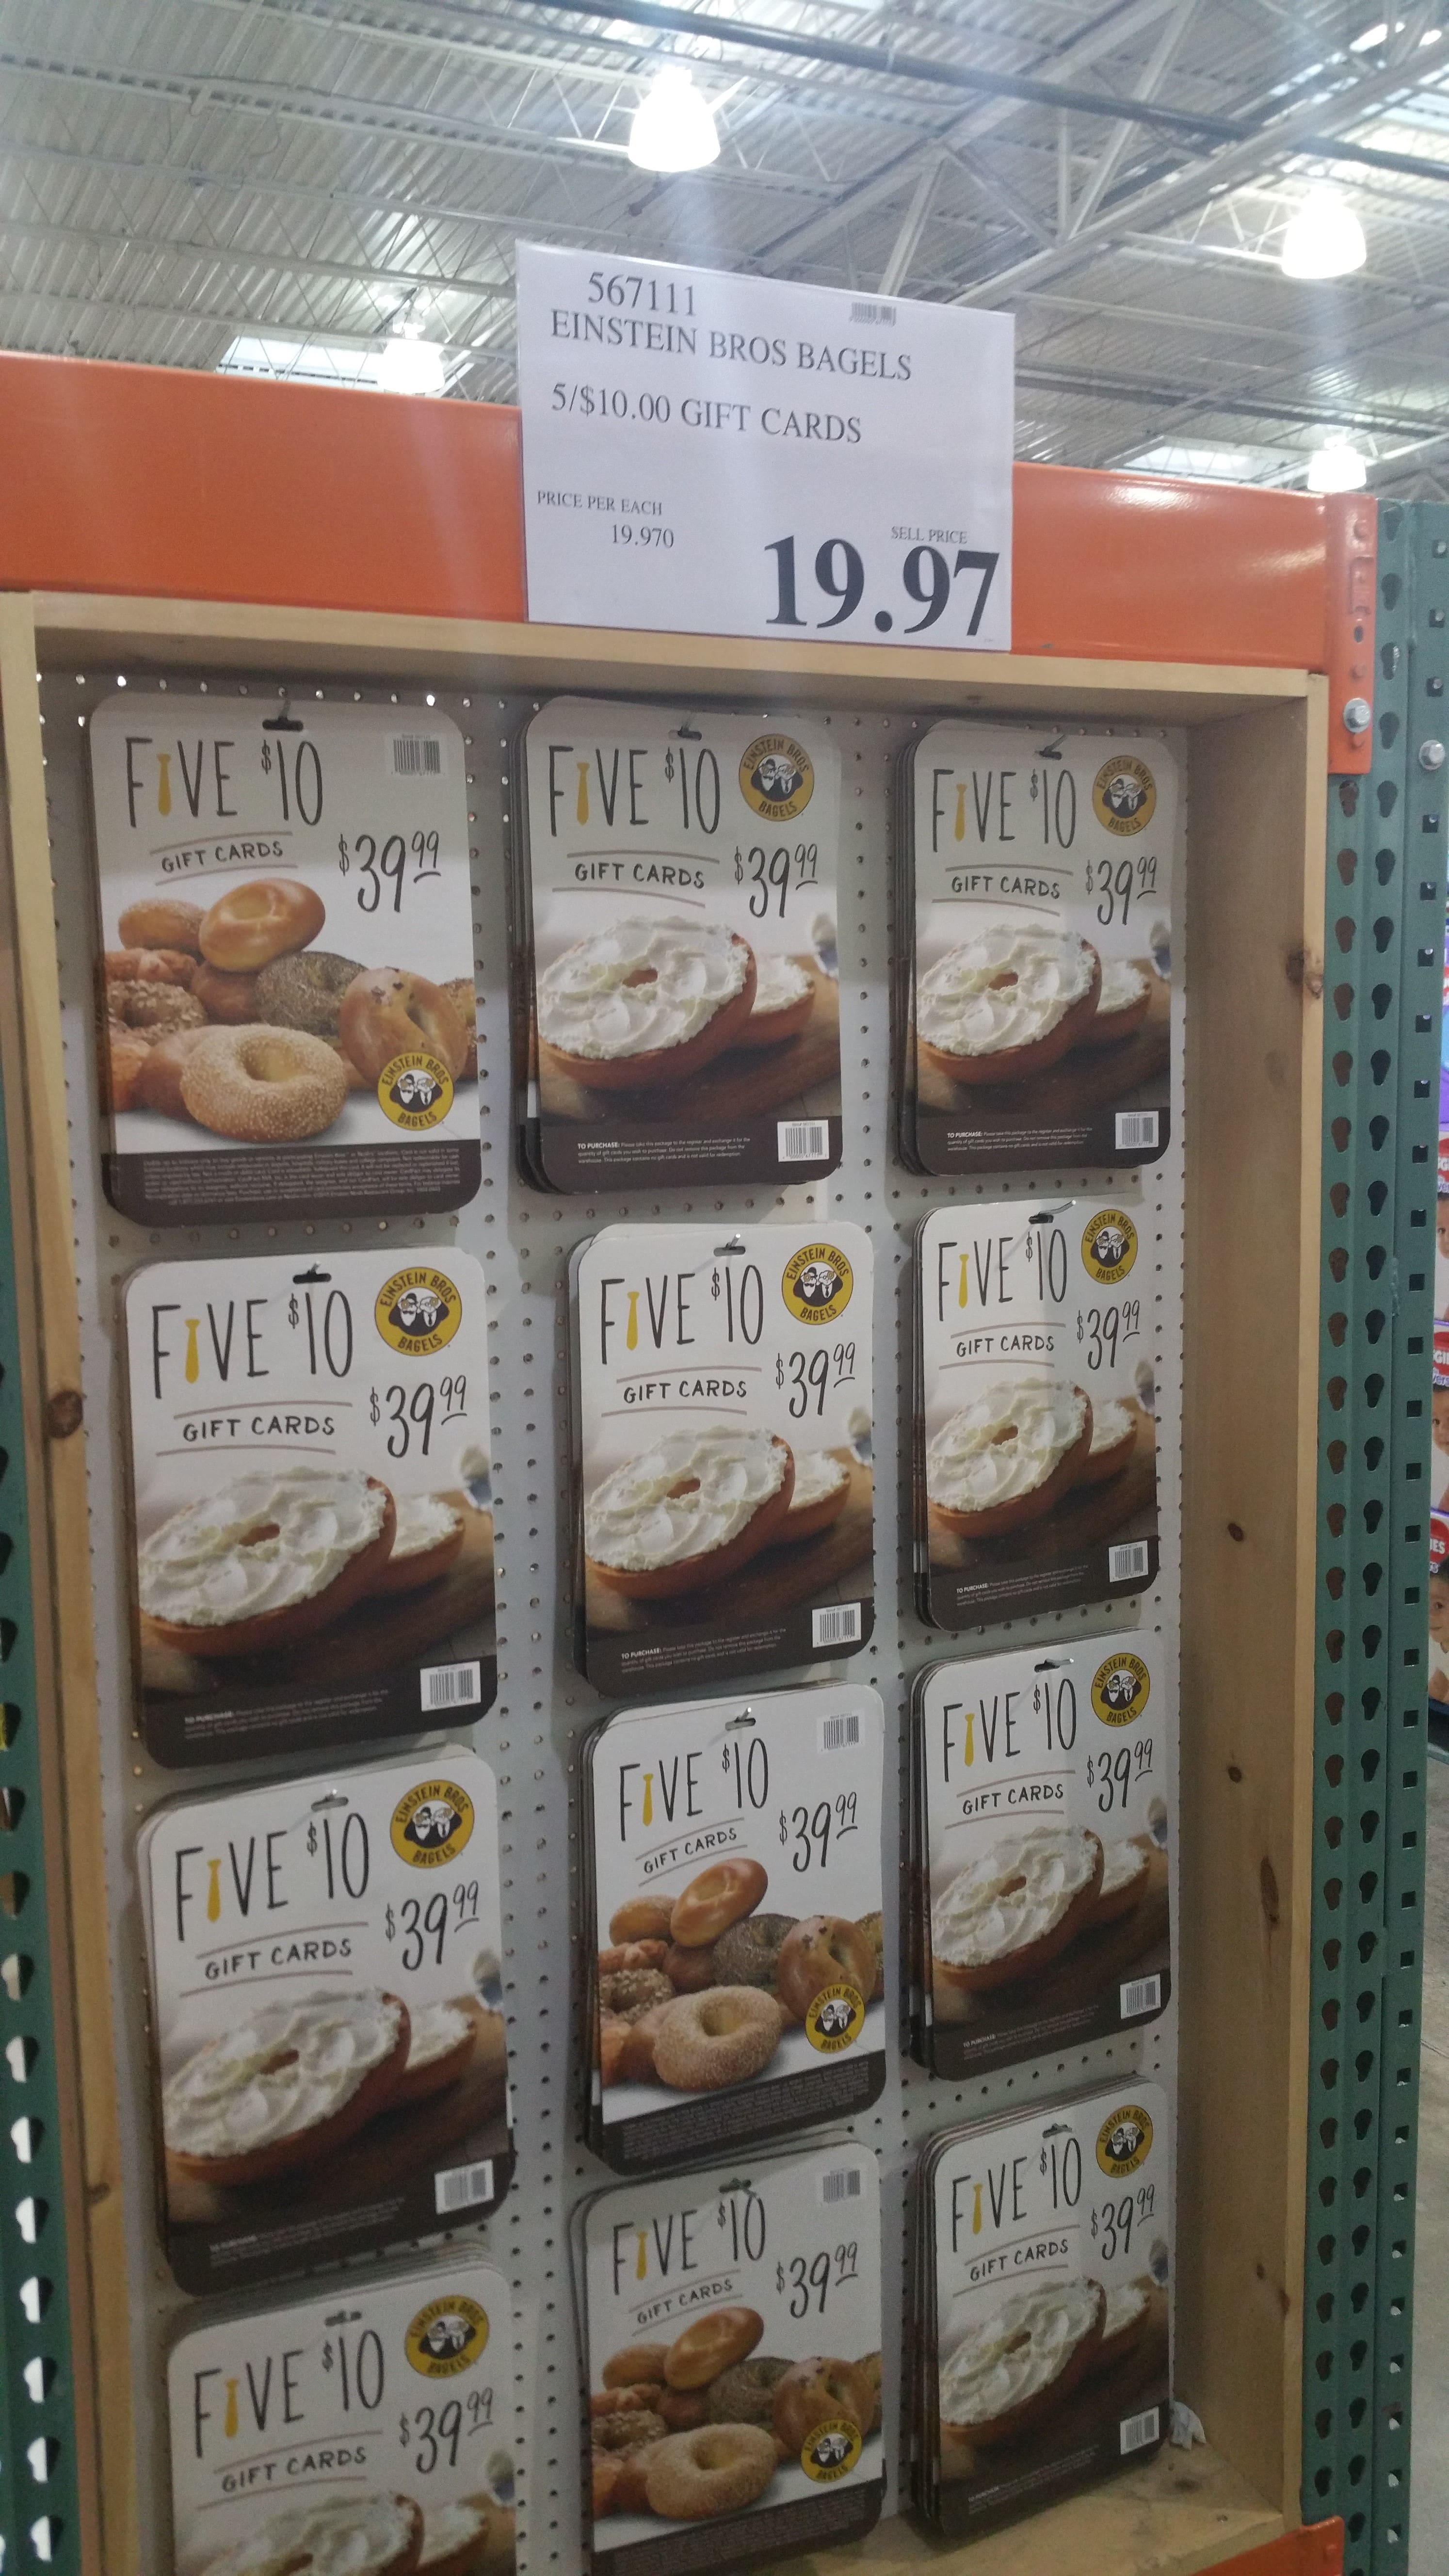 $50 worth of Einstein Bros Bagels gift cards @ Costco for $20 YMMV ...